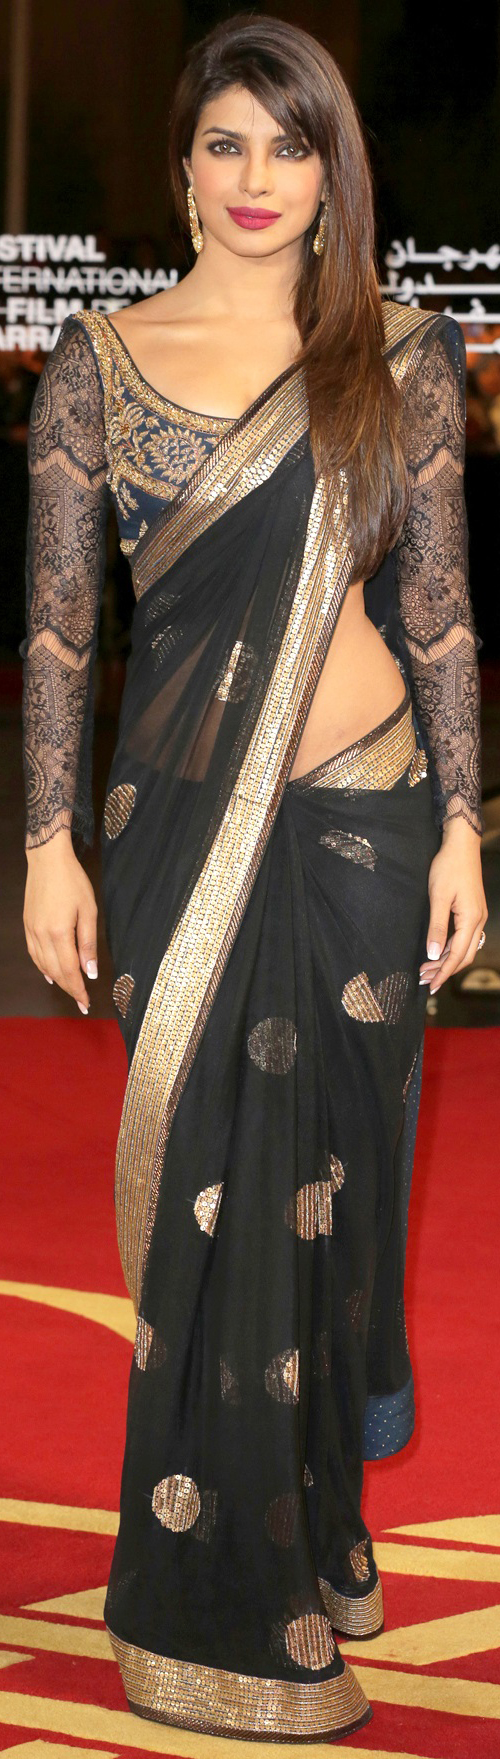 Priyanka Chopra In Black Saree